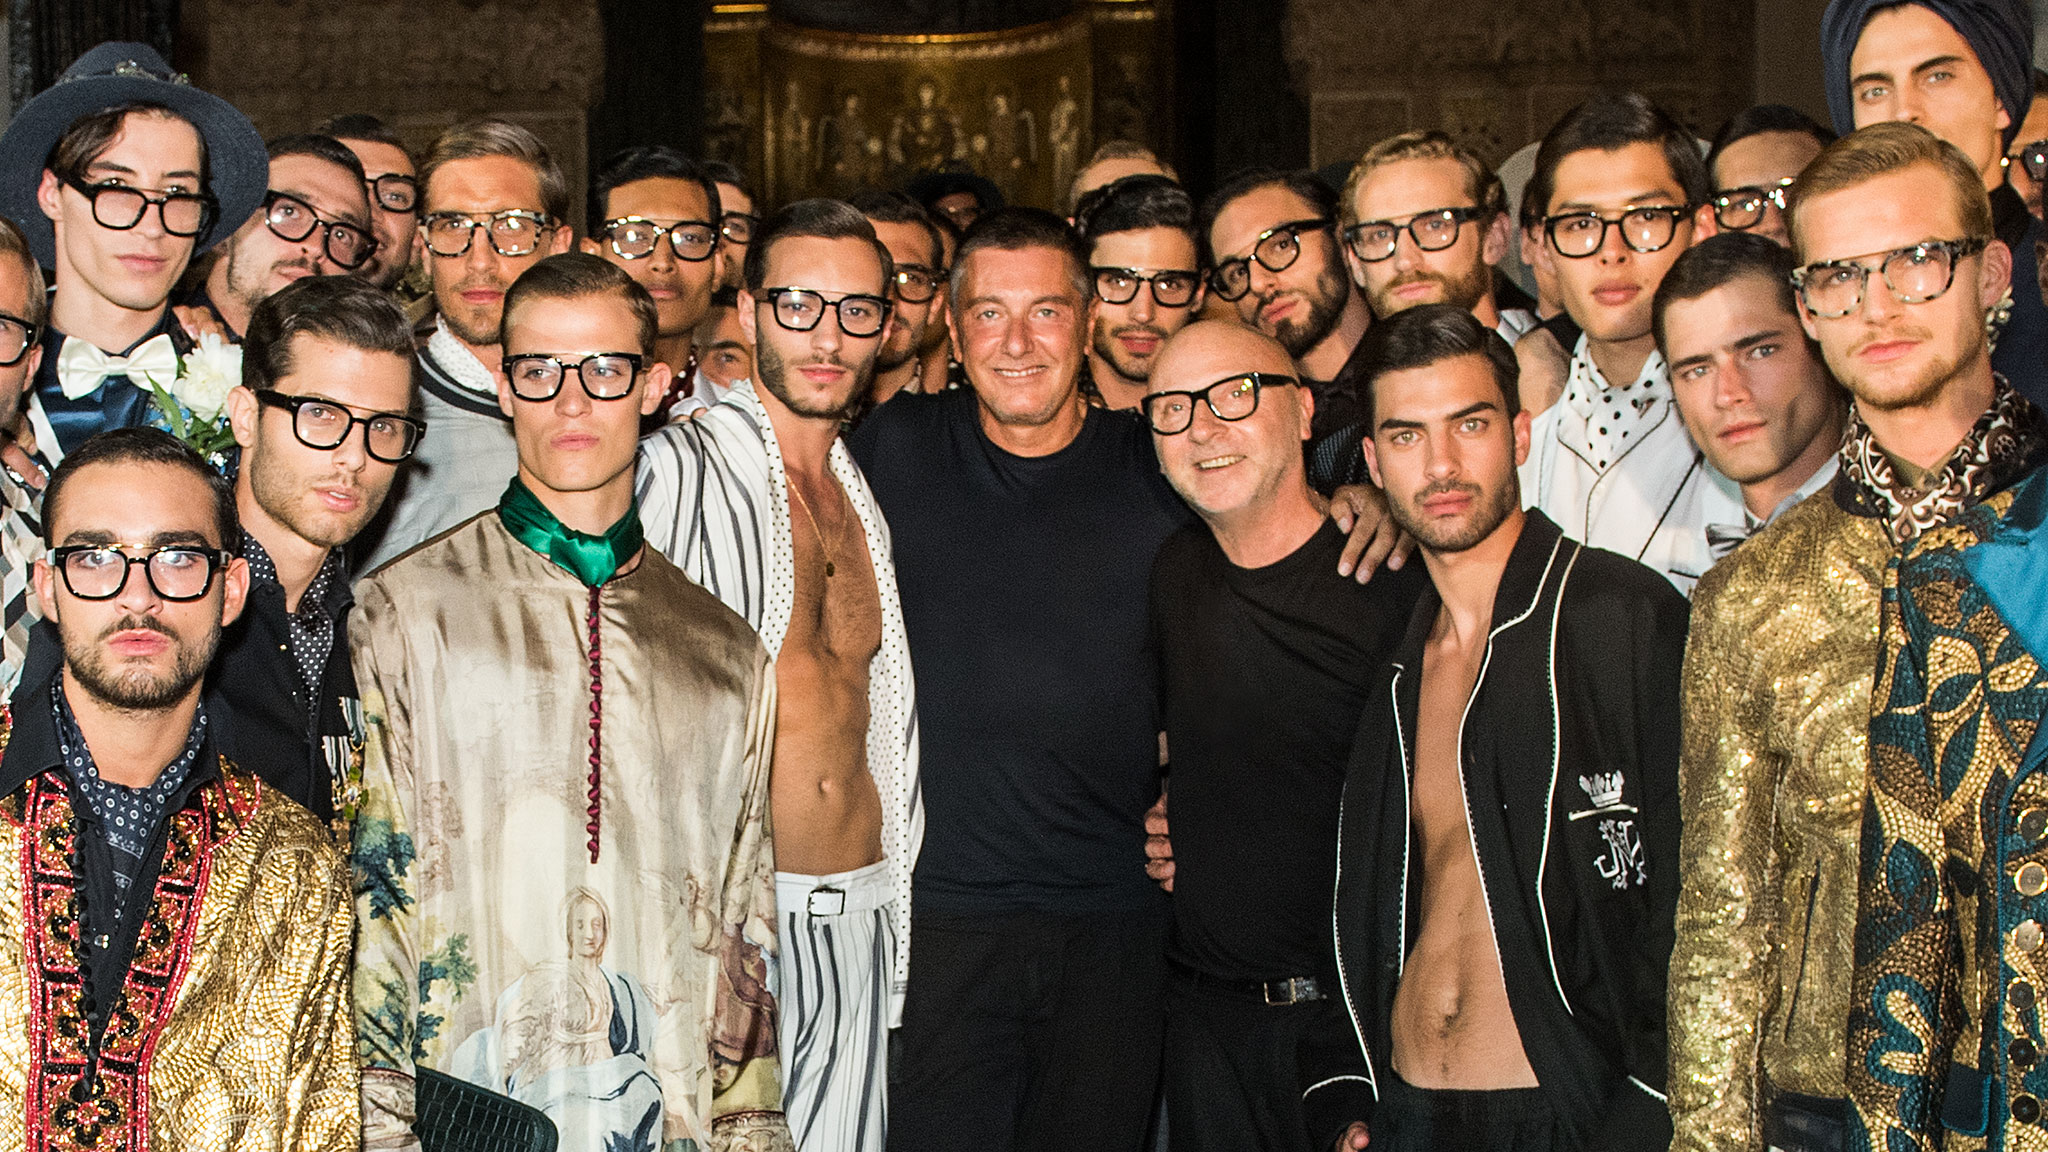 b968ca0a8475b Dolce and Gabbana unfiltered  millennials, Melania and la moda   Financial  Times